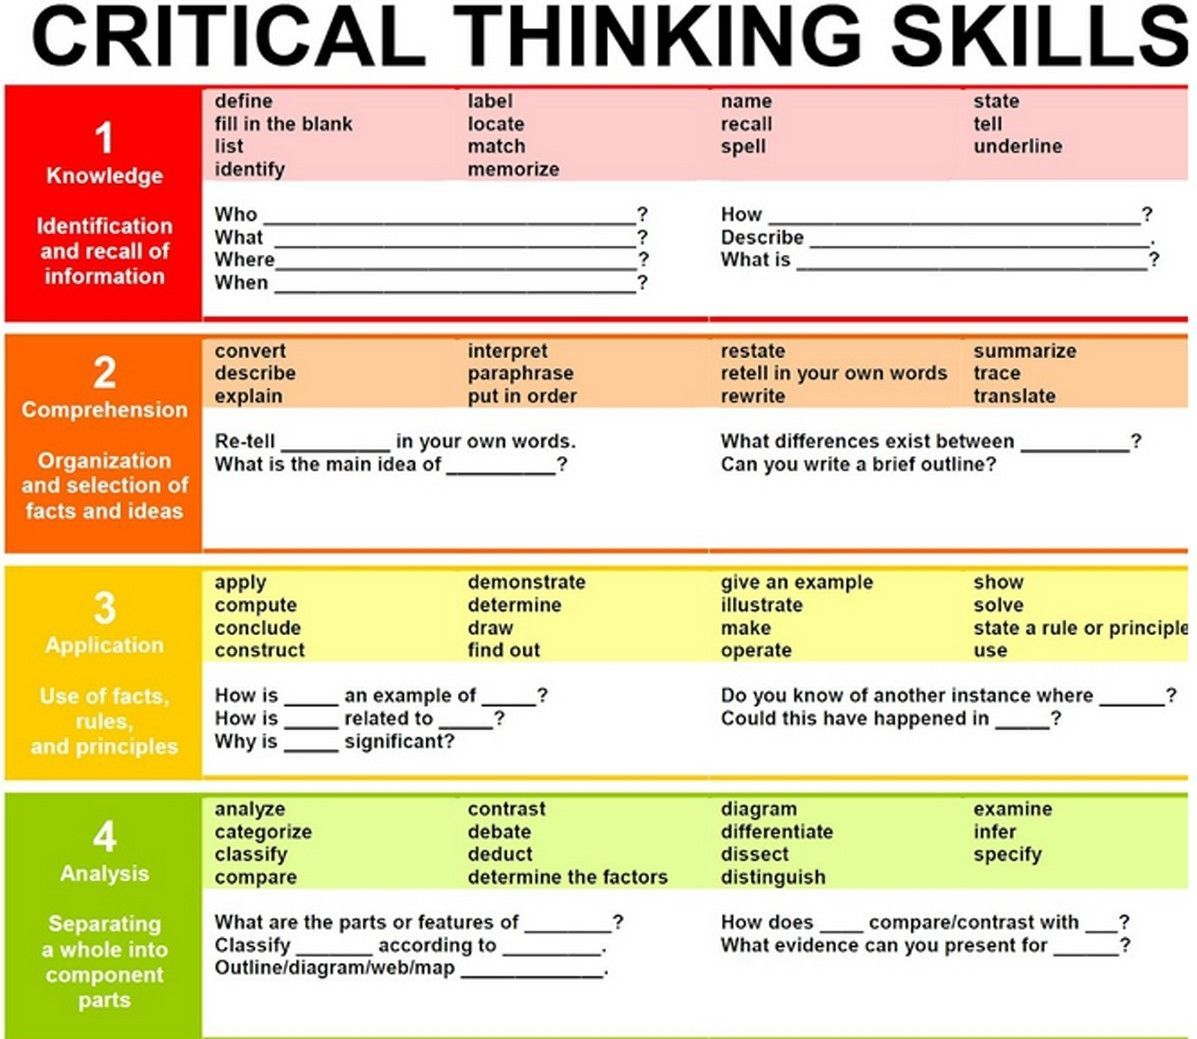 how do emotional creative and pessimistic learning styles affect critical thinking essay The streamlined focus on four key elements helps students to hone in on what is essential to their success: (1) active learning, (2) critical learning and thinking strategies, (3) emotional and behavioral skills, (4) application of skills to the workplace and everyday life.